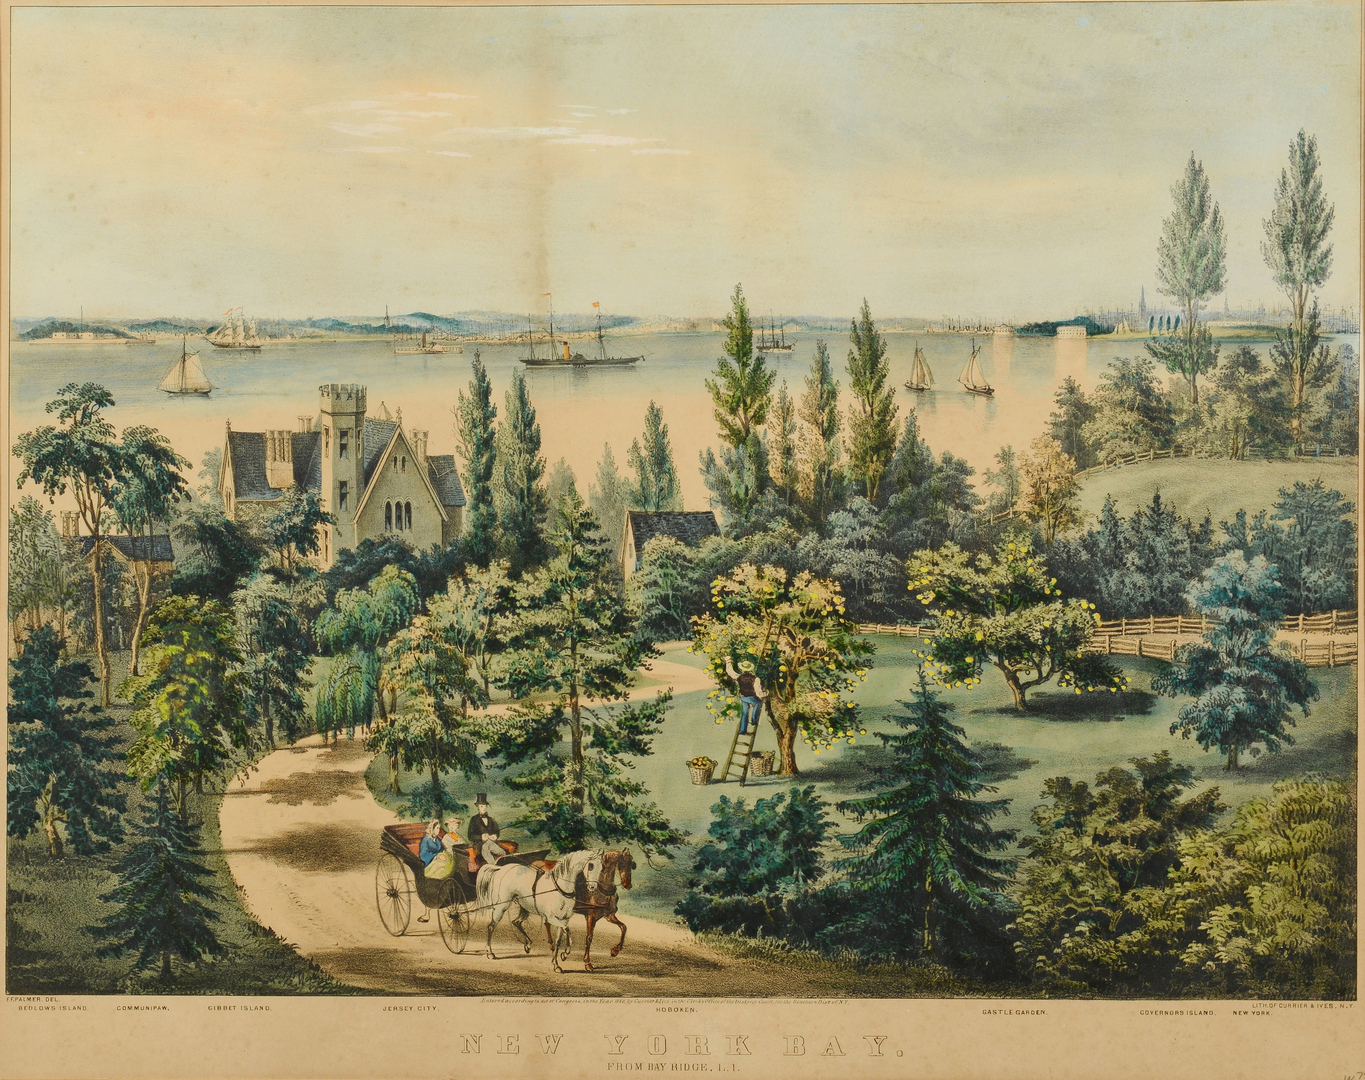 Lot 3088183: Currier & Ives Lithograph, New York Bay